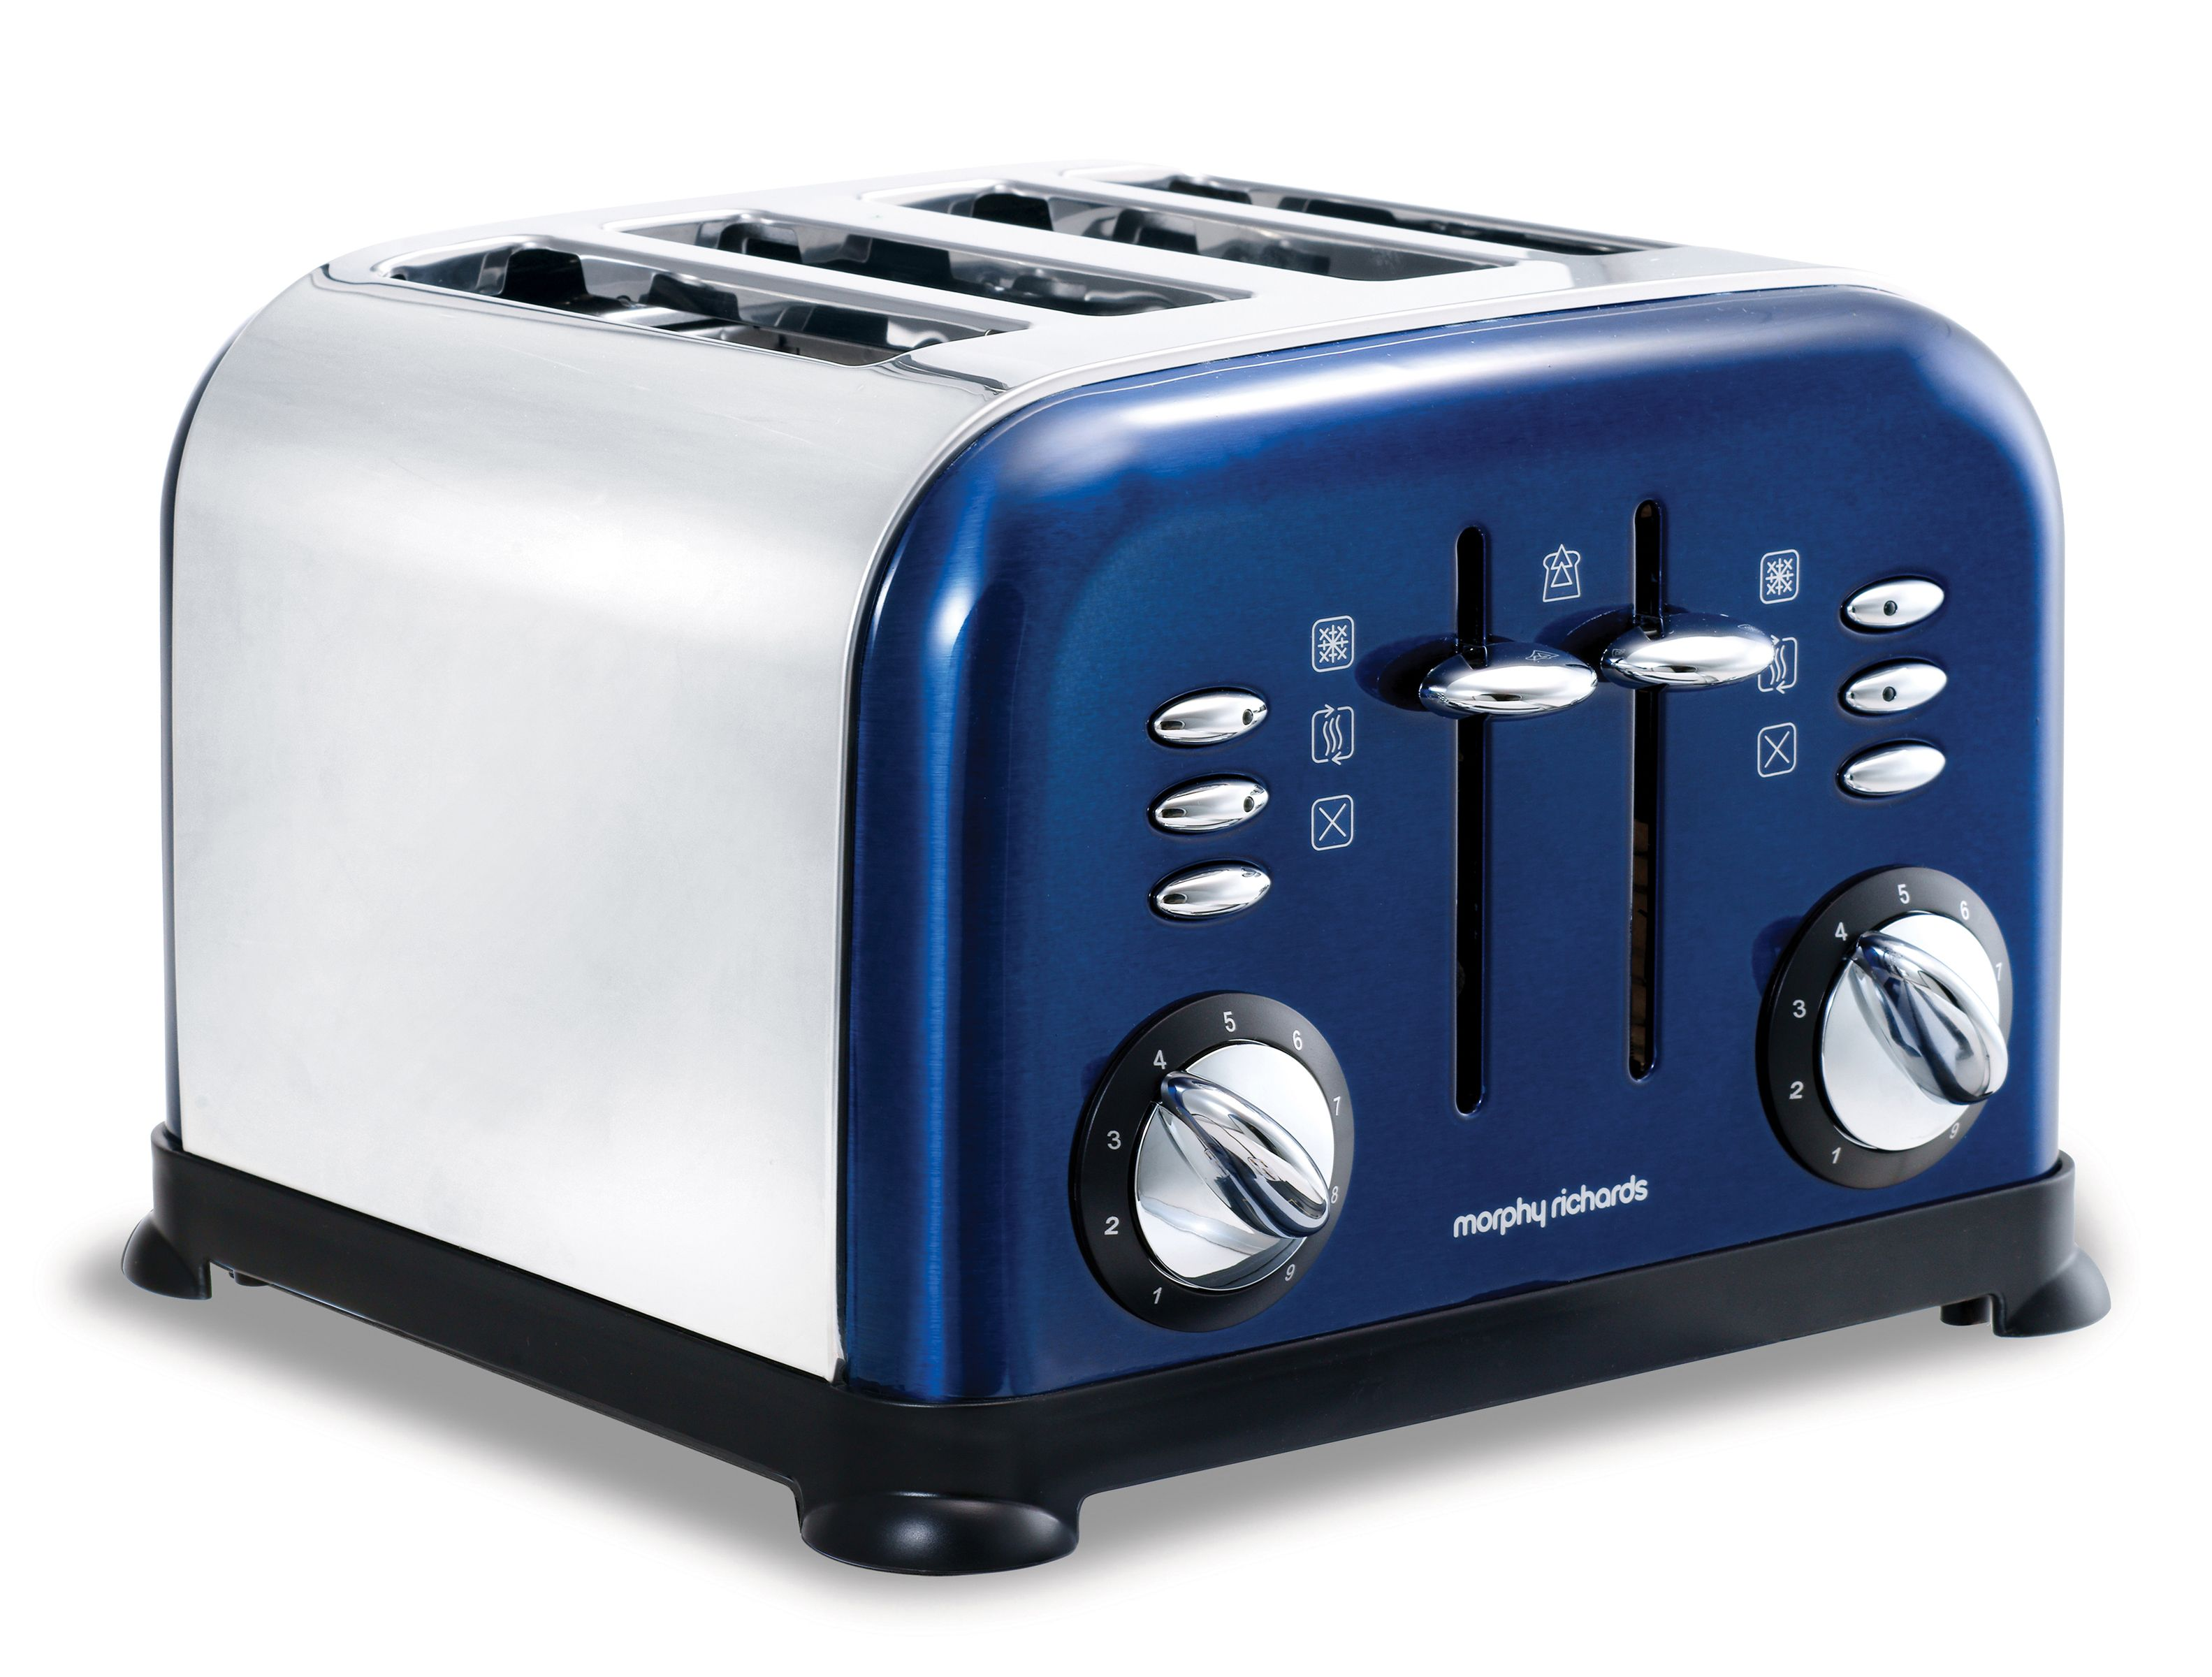 44730 blue accents 4 slice toaster